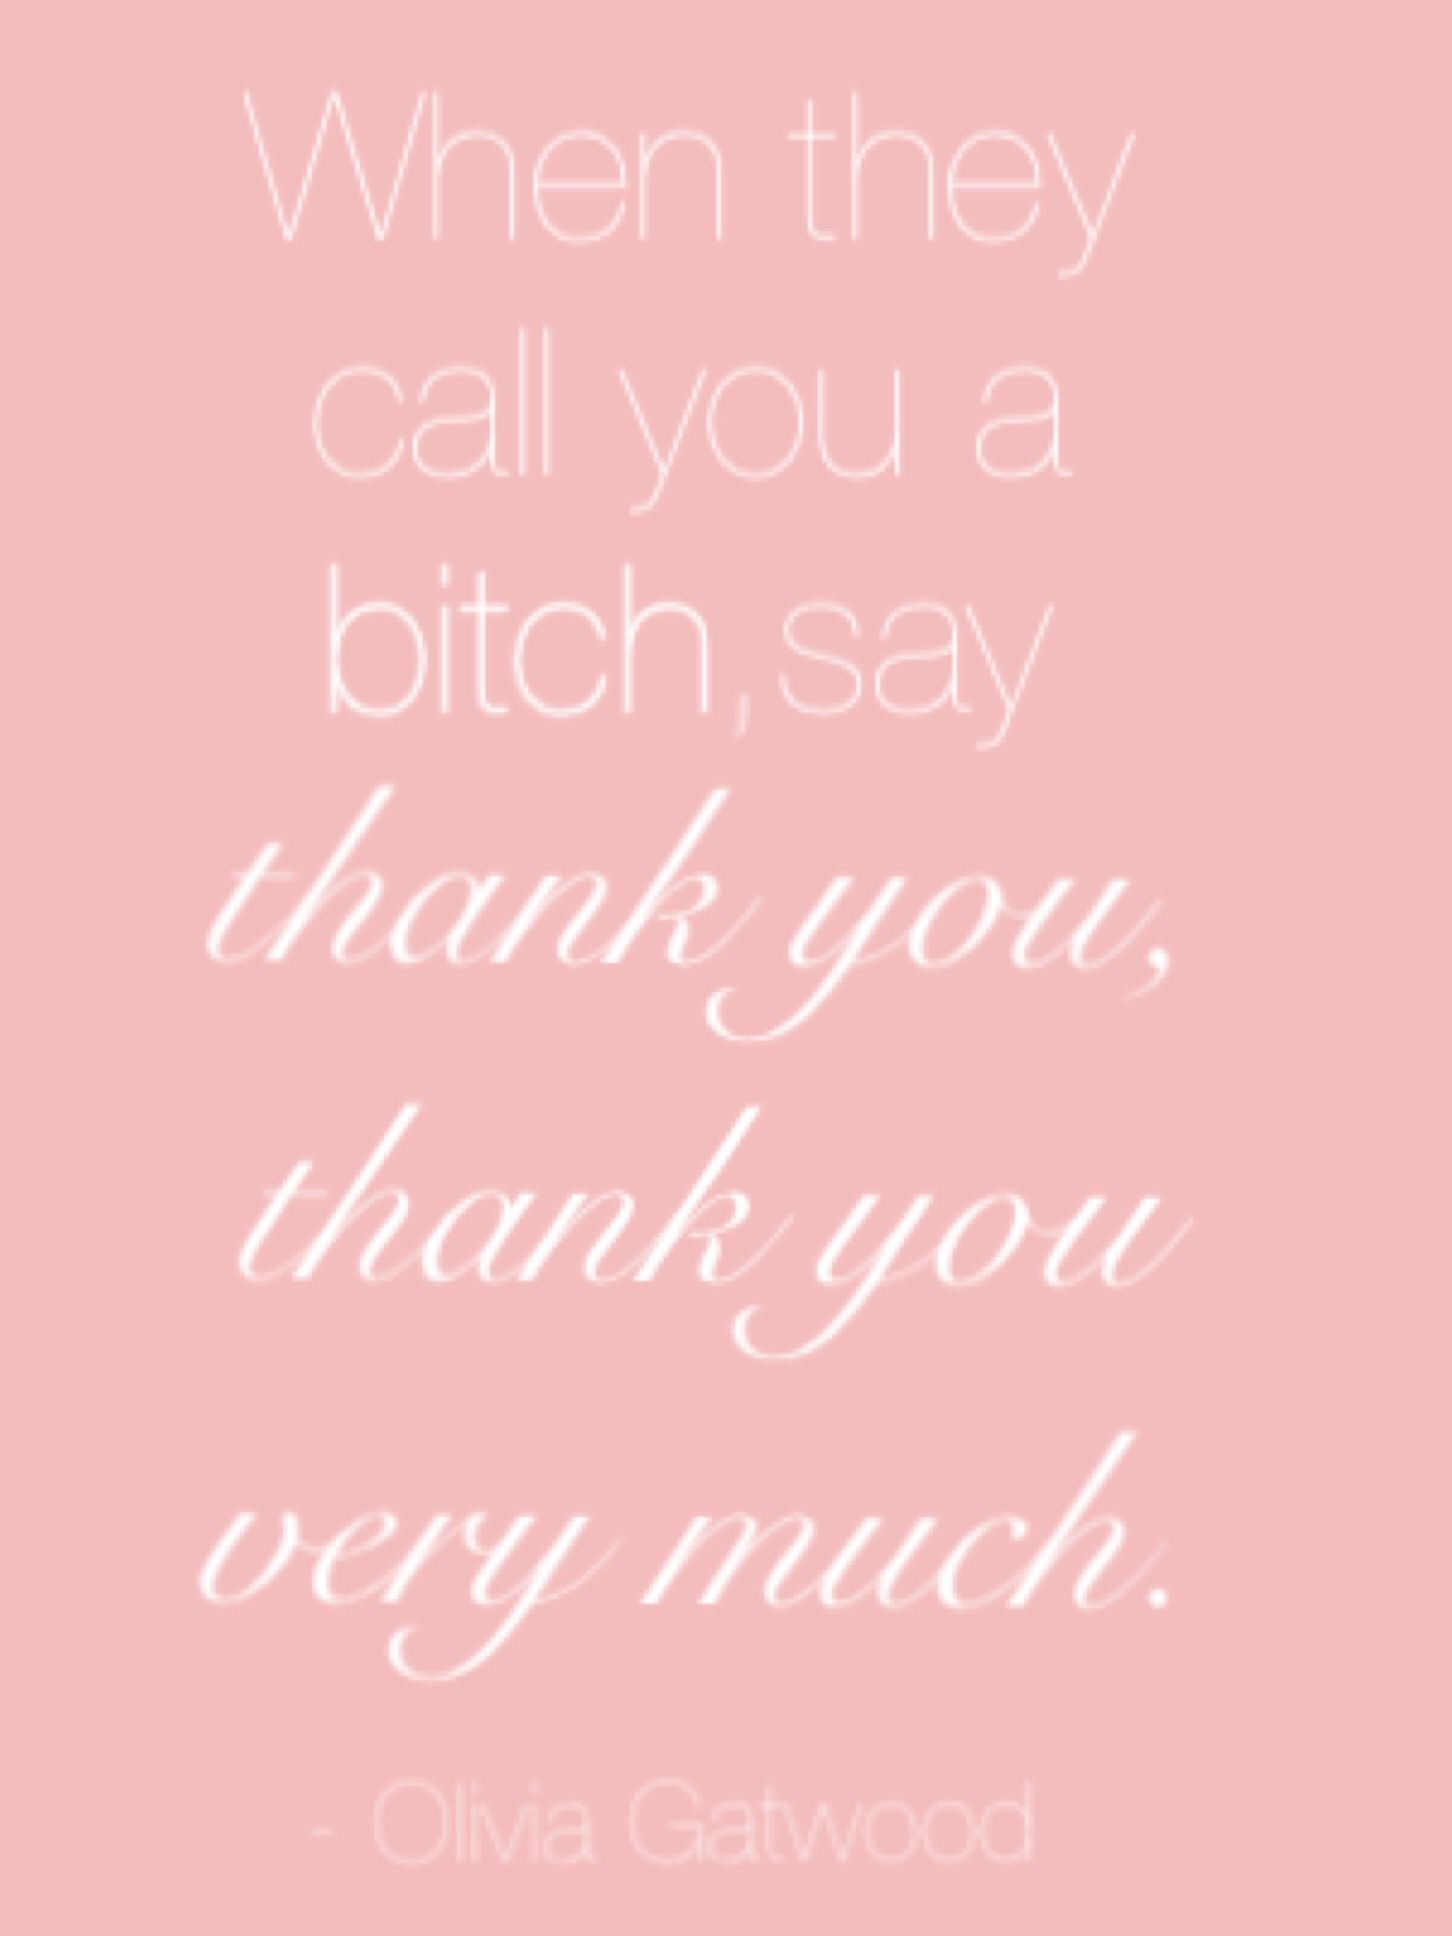 When They Call You A Bitch Say Thank You Thank You Very Much